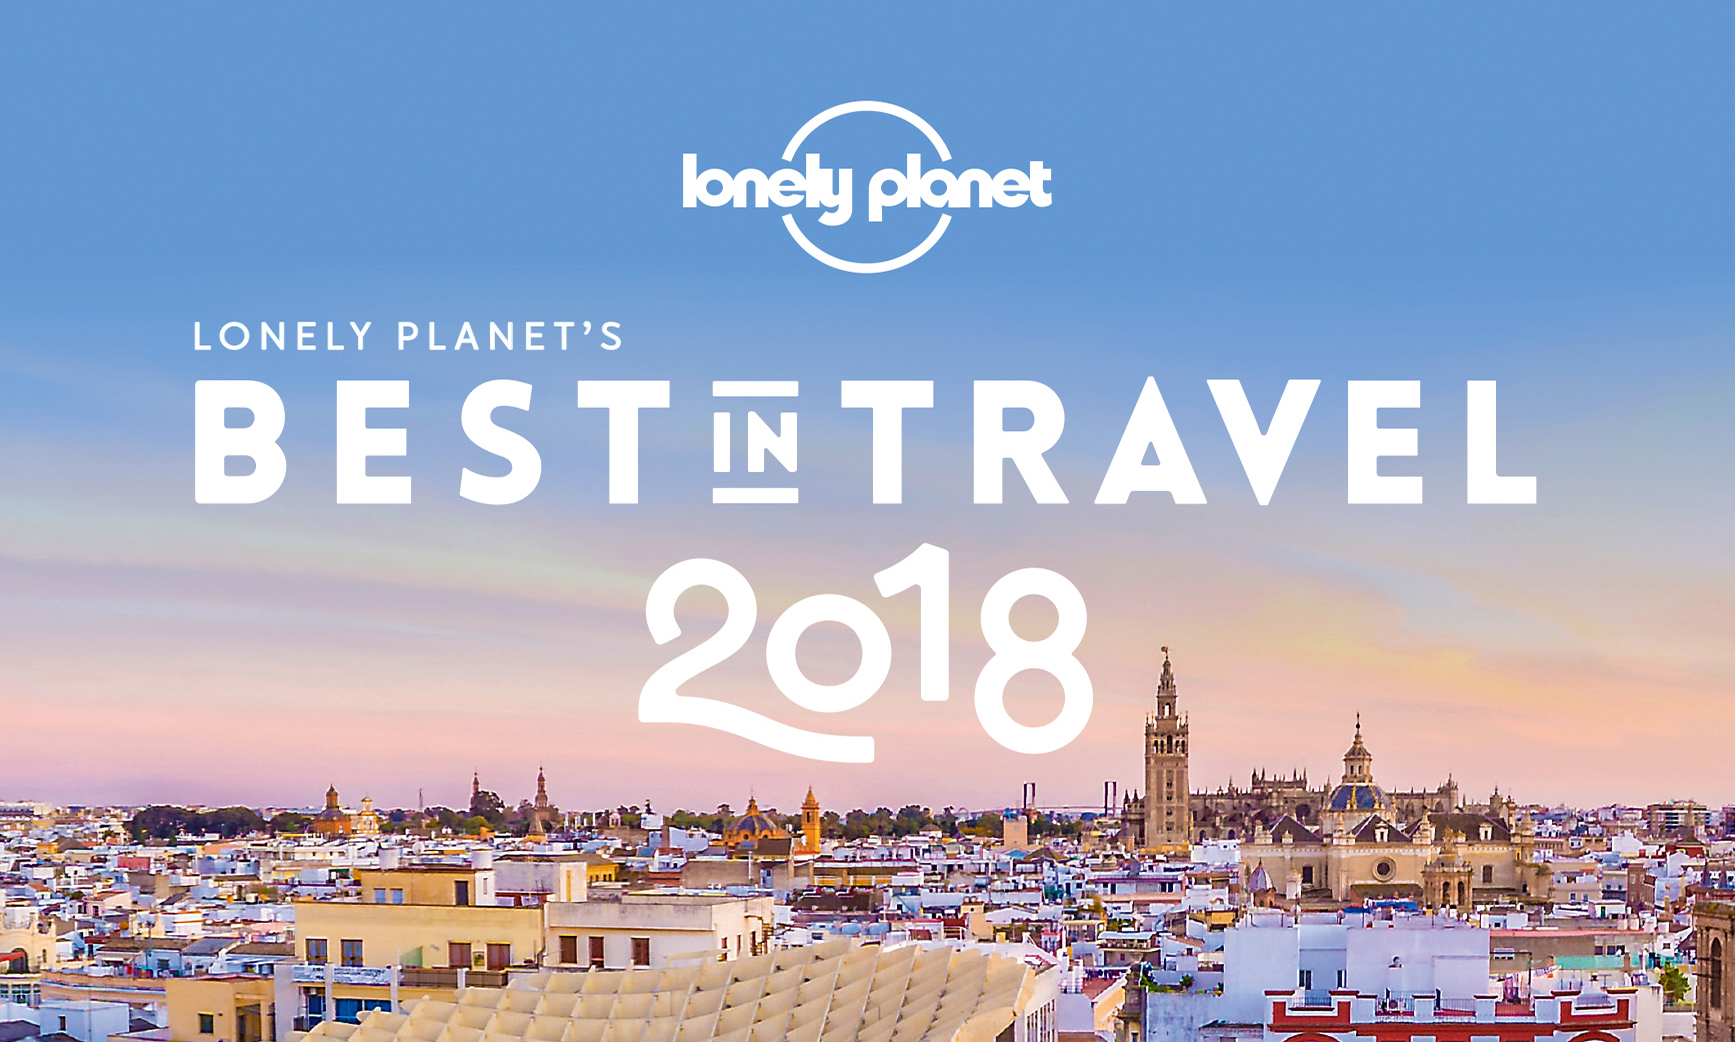 Forsiden til Lonely Planets Best in Travel 2018